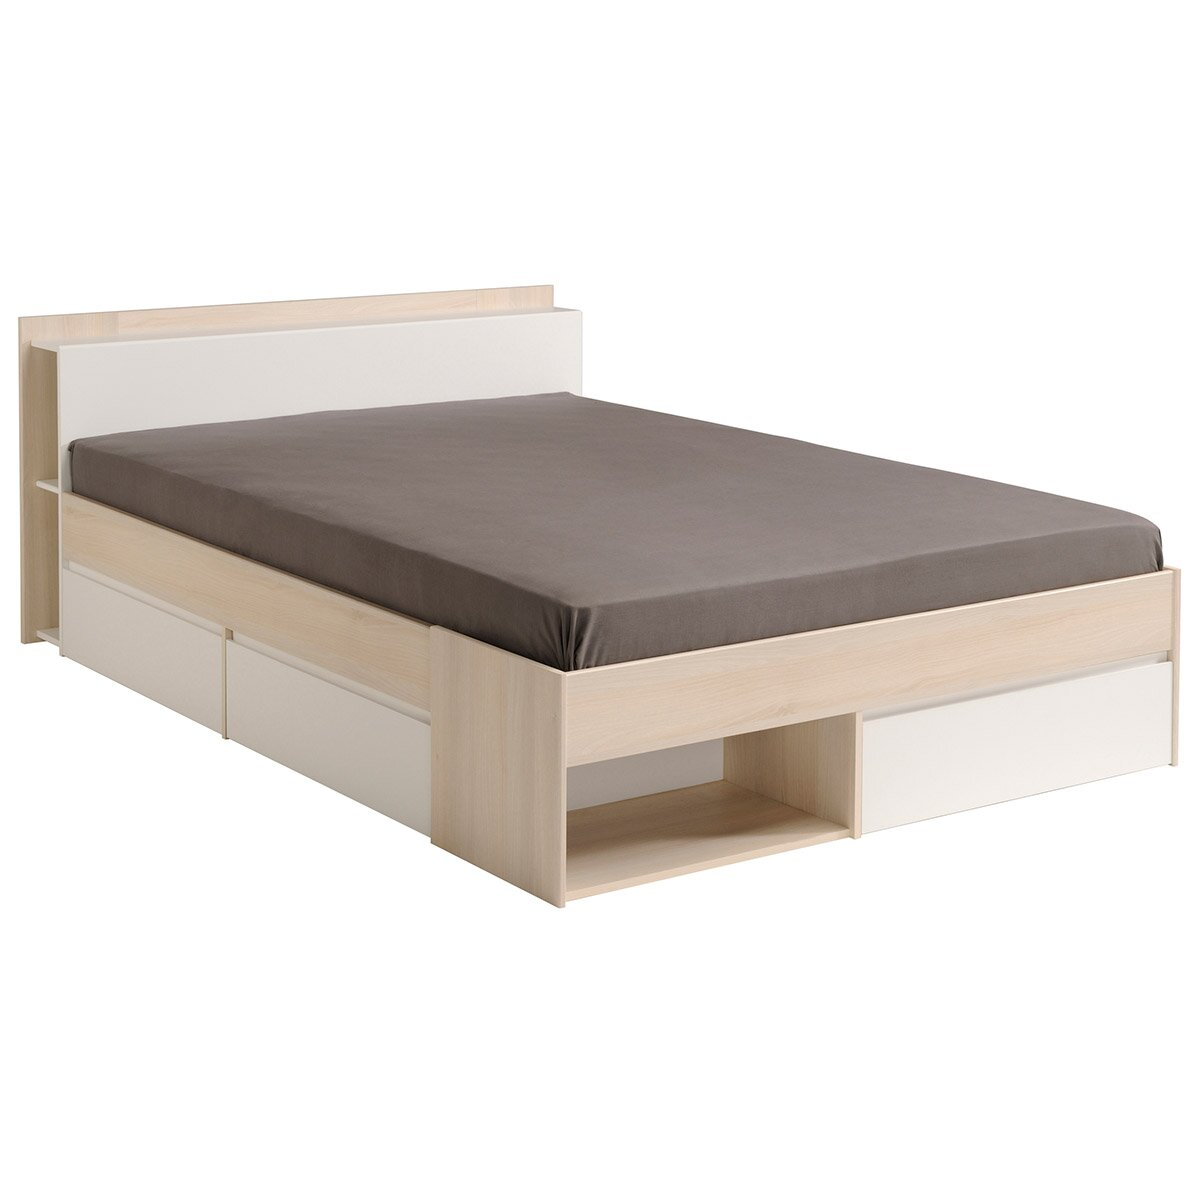 parisot most full storage platform bed reviews wayfair. Black Bedroom Furniture Sets. Home Design Ideas